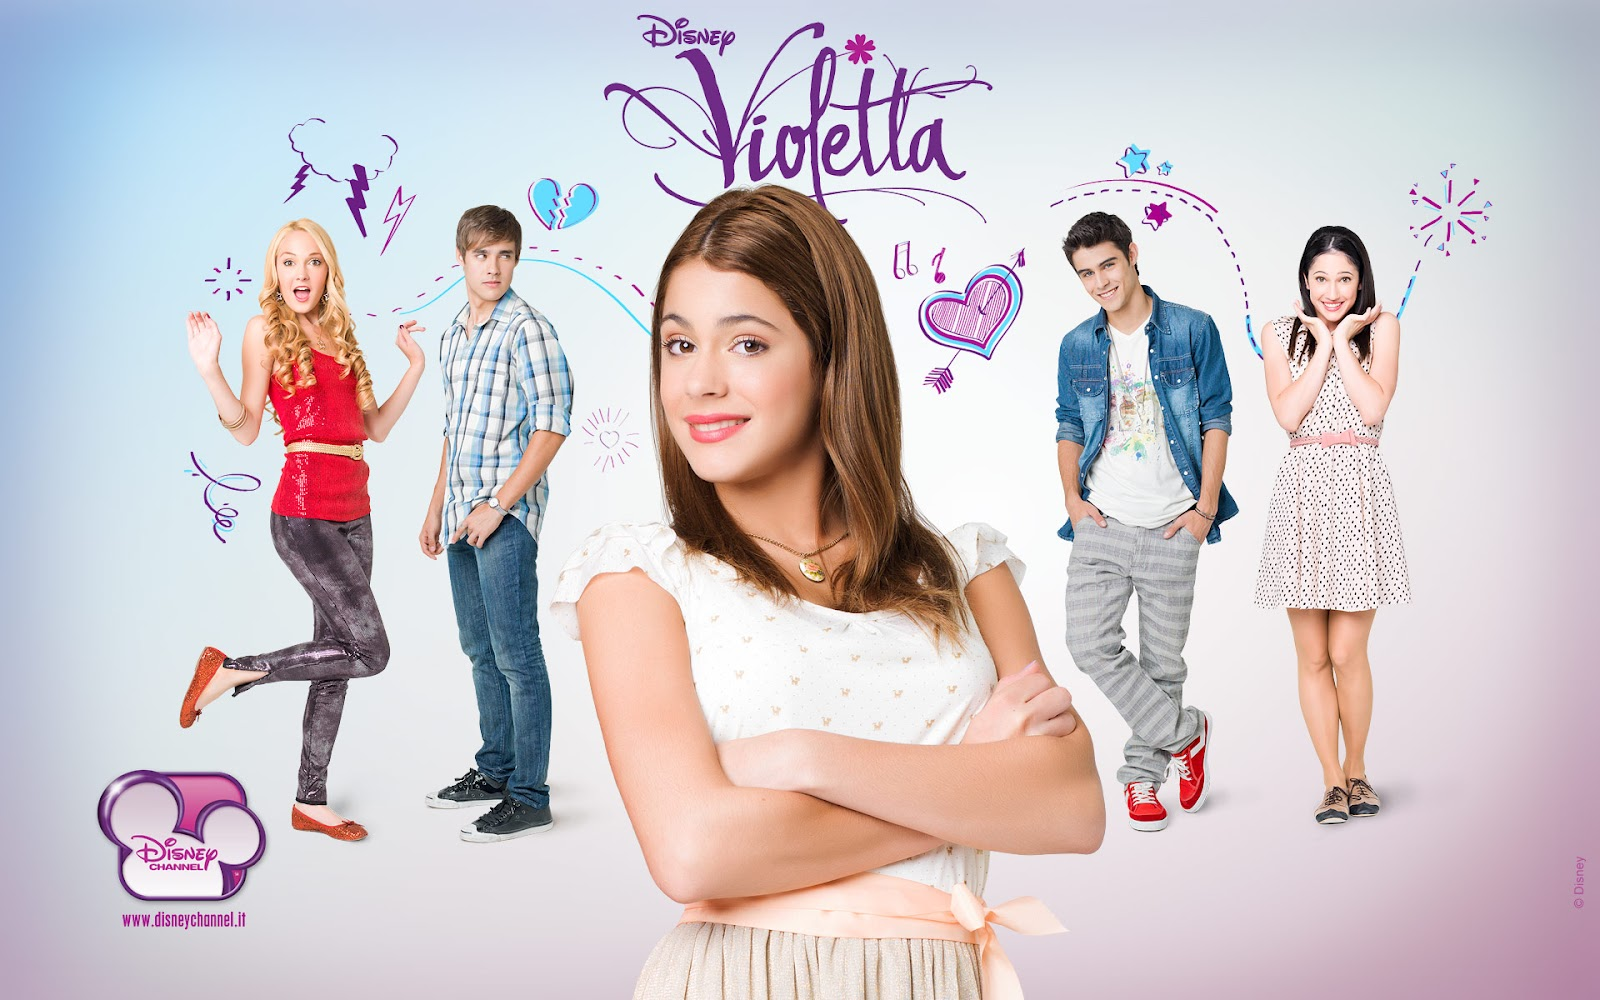 Coloriage Violetta, une fille adolescente avec talent musical  - coloriage violetta a colorier